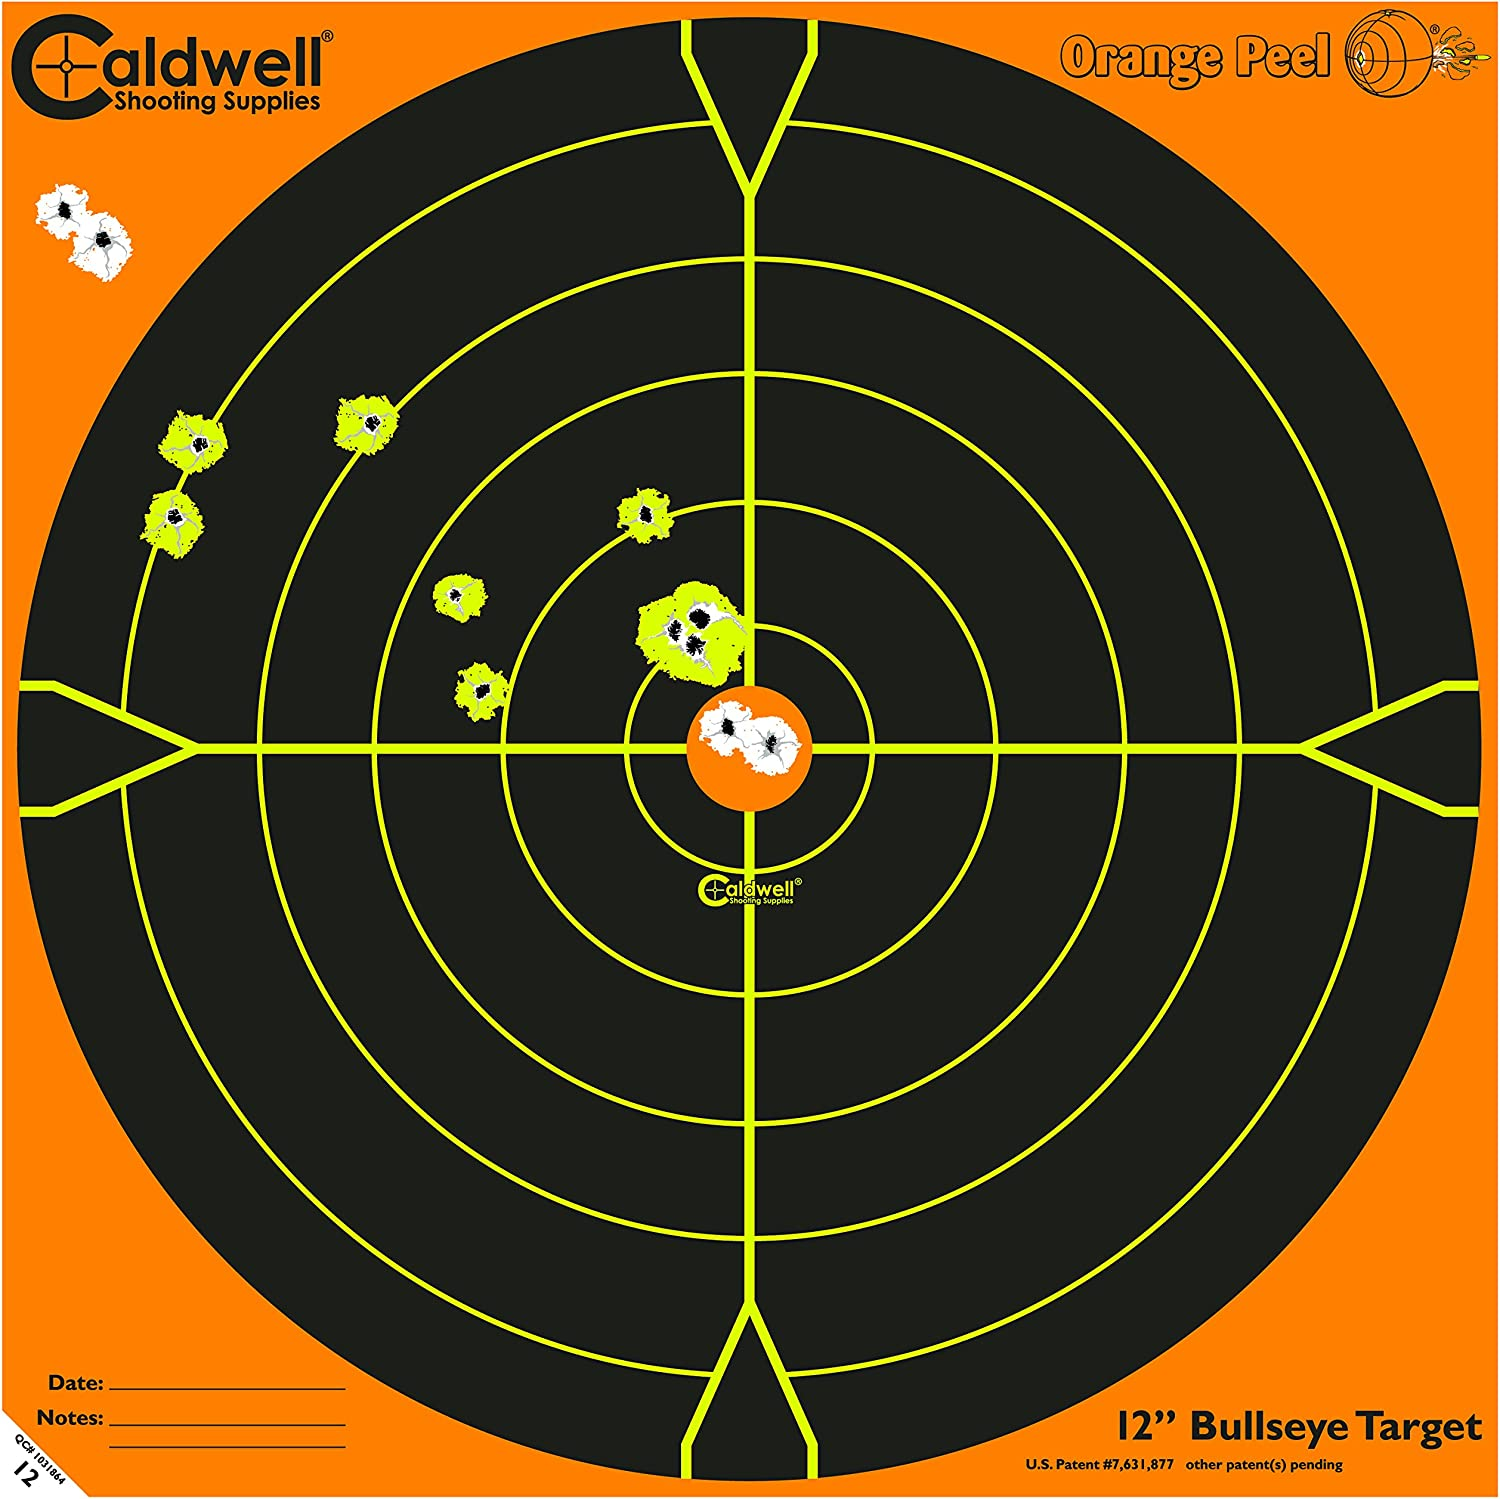 Caldwell orange Peel Bullseye Targets with Flake Off Material, Strong Adhesive and Multiple Sizes for Outdoor, Range, Shooting and Hunting